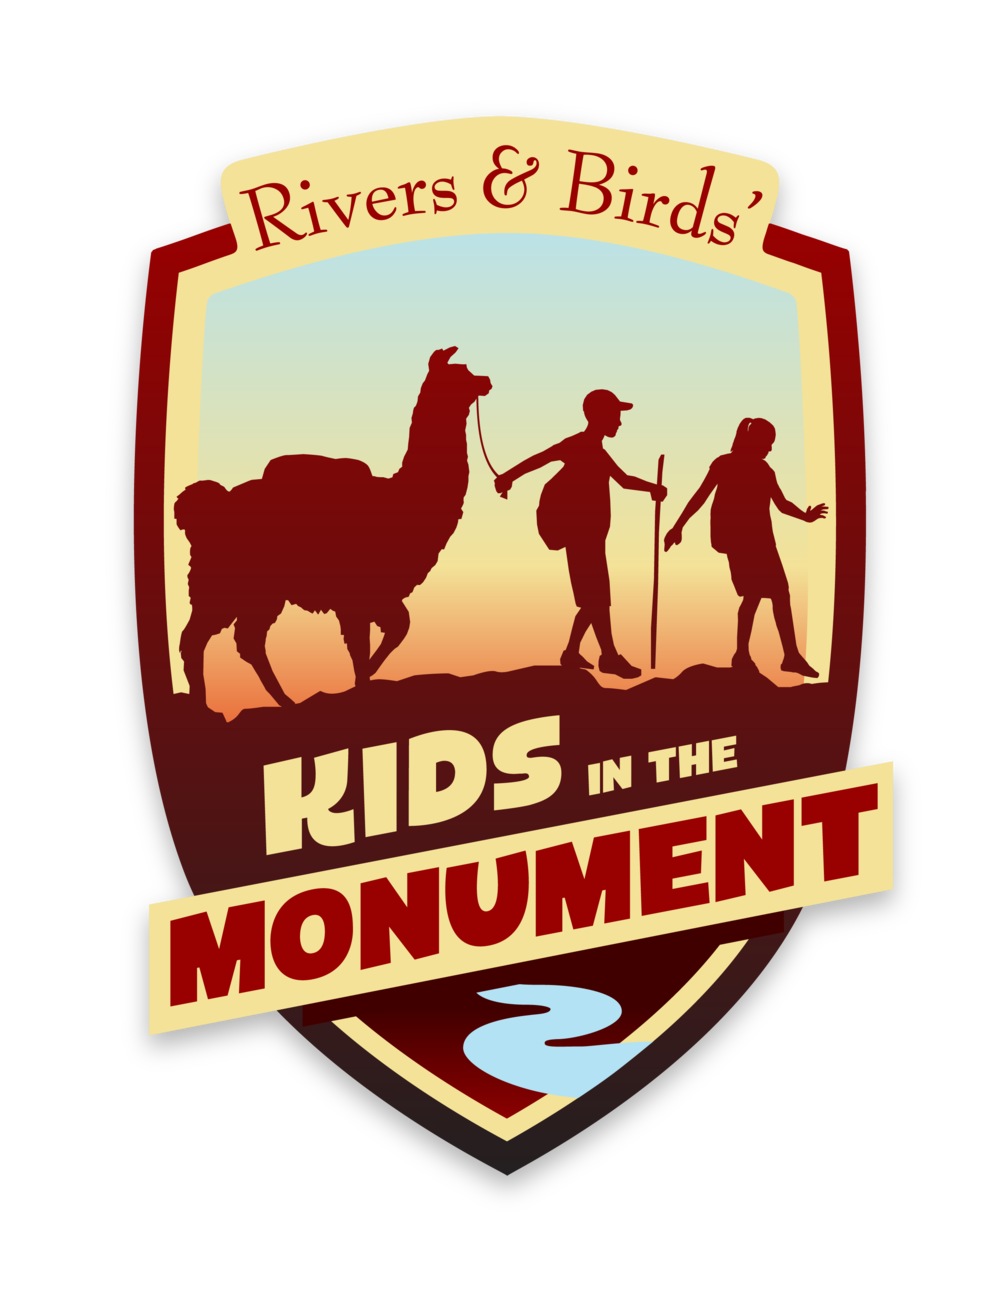 Kids in the Monument Logo.png